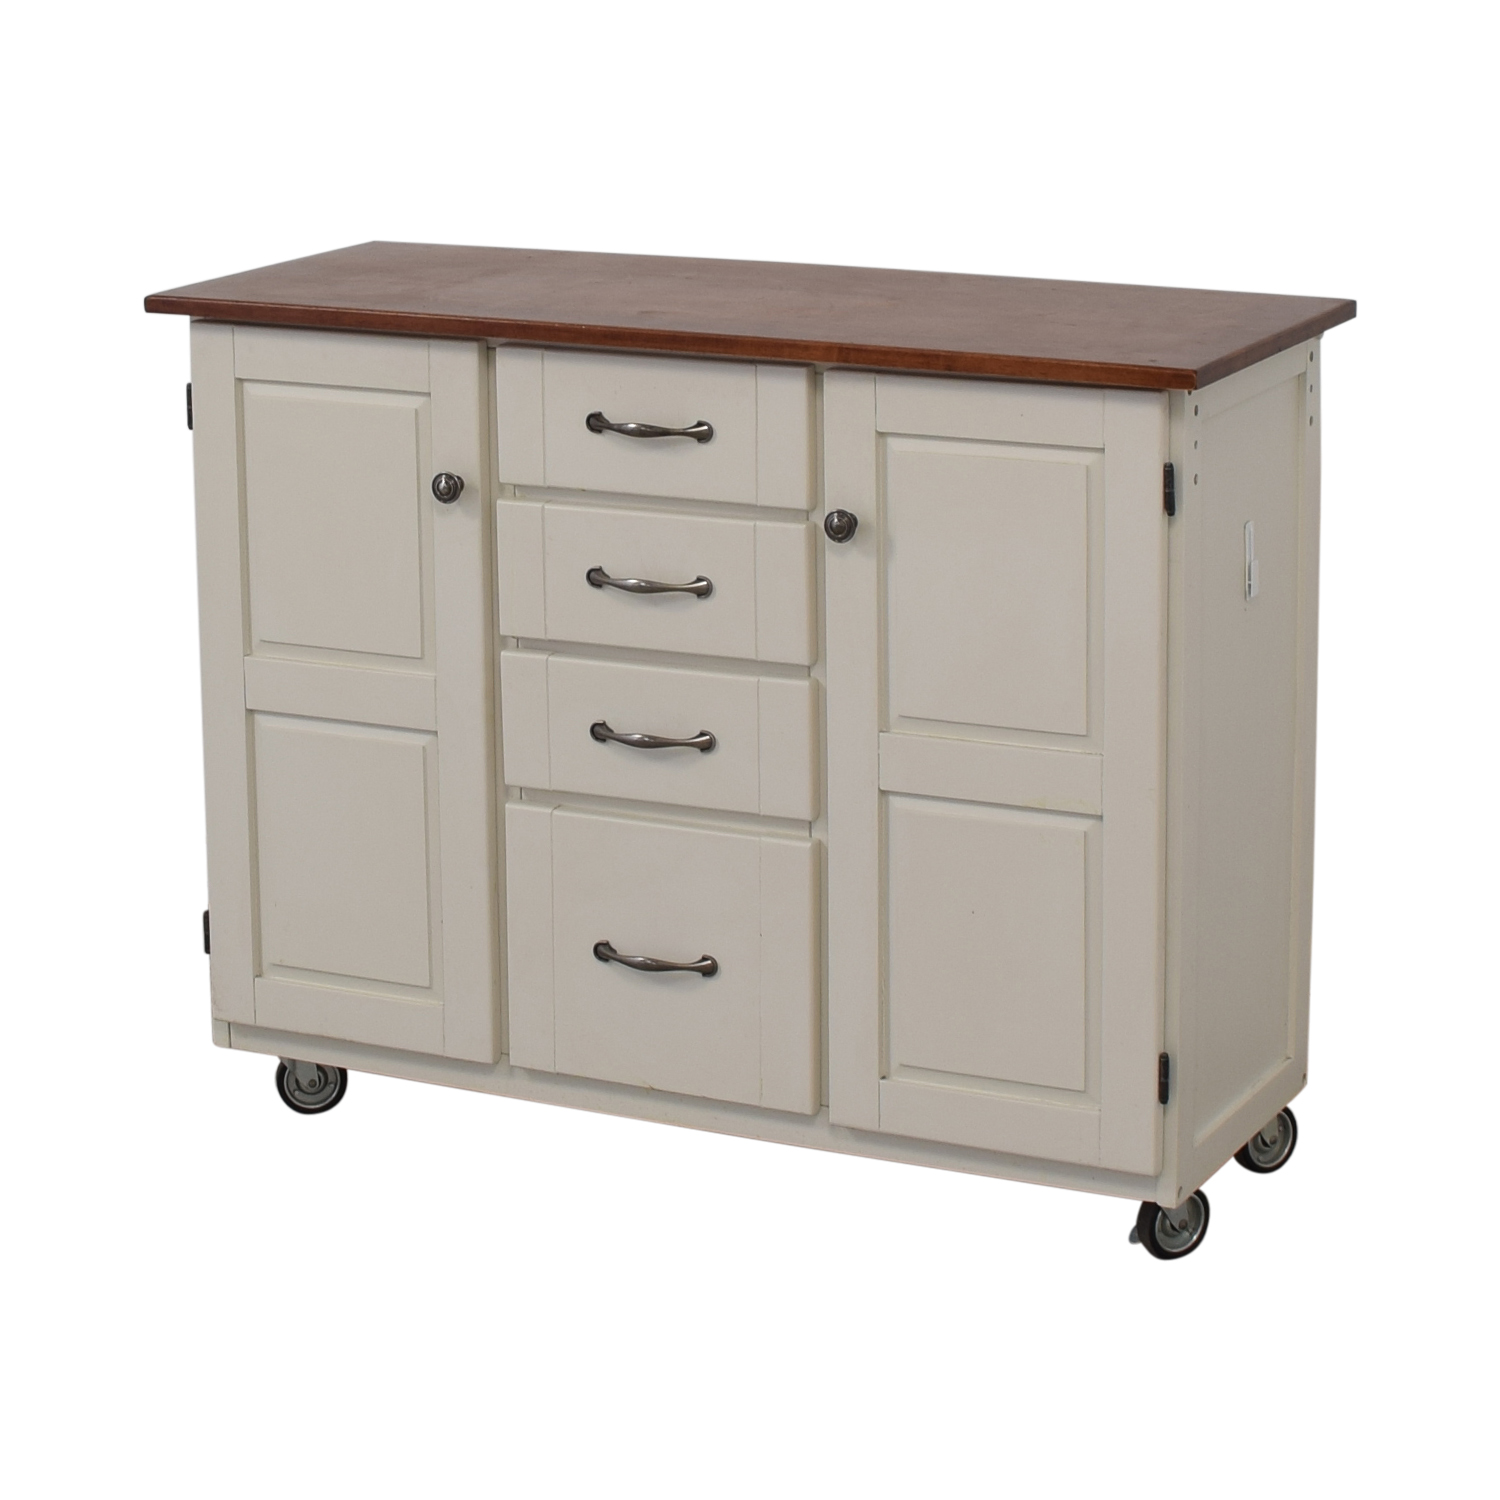 shop Home Styles Home Styles Kitchen Cart online